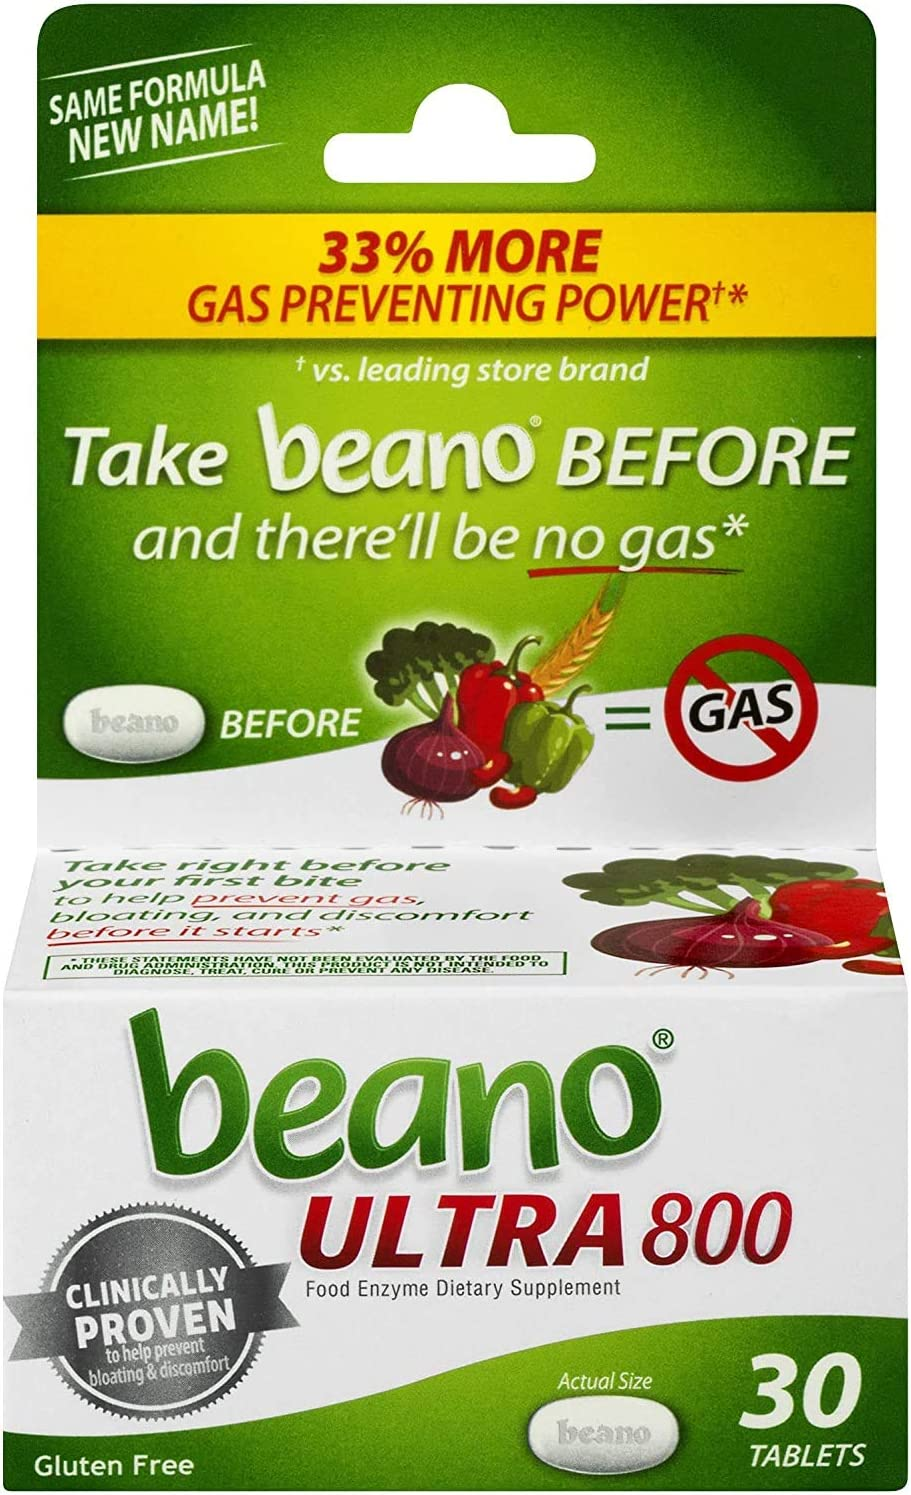 beano Ultra 800 Gas Prevention, Food Enzyme Dietary Supplement, Help Digest Gas-Causing Foods, 30 Tablets | Pack of 3